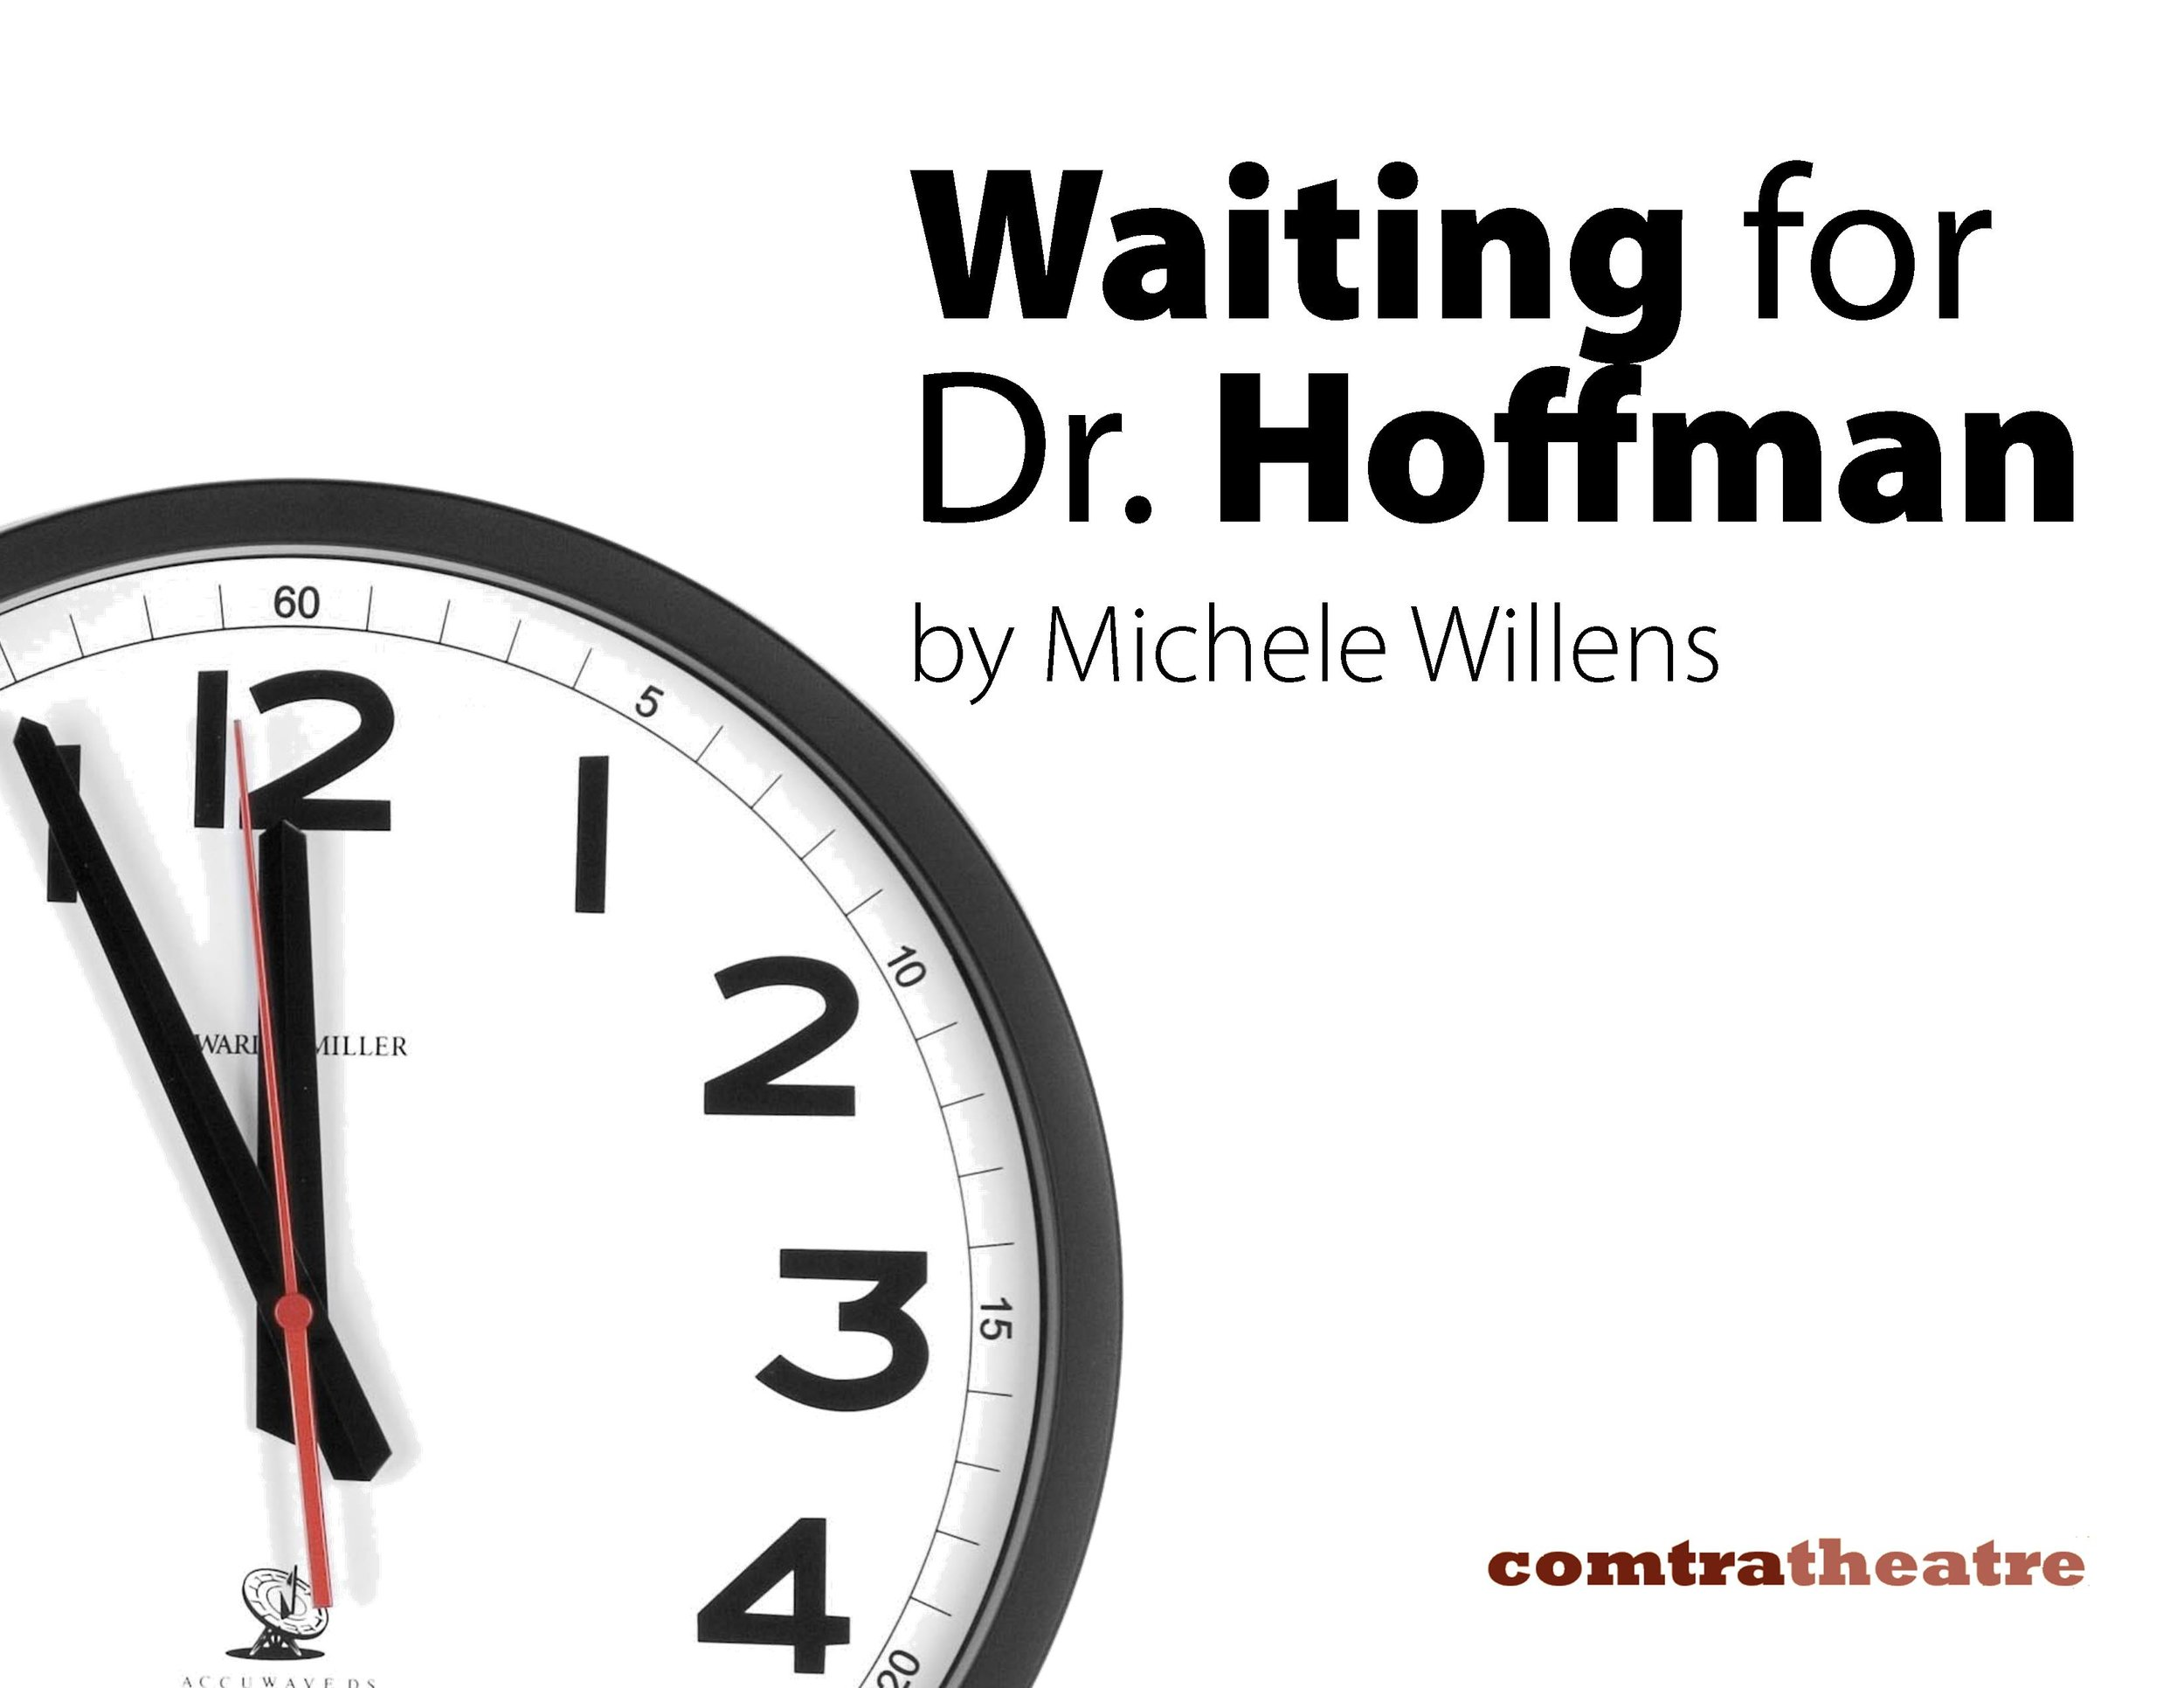 Waiting for Dr Hoffman Poster.jpg